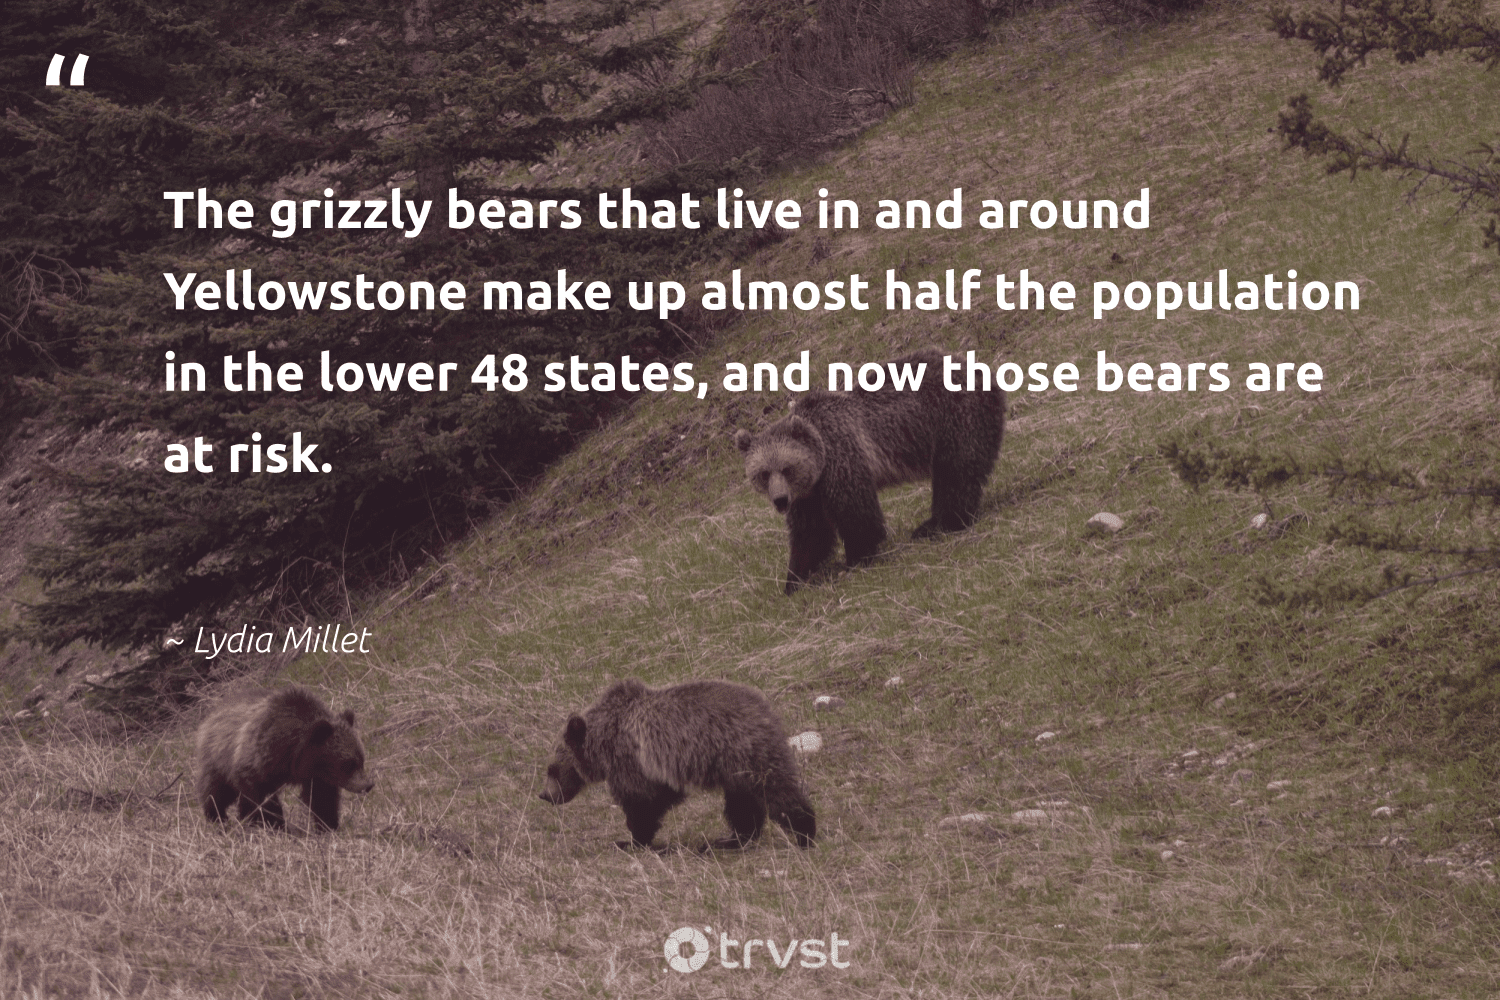 """""""The grizzly bears that live in and around Yellowstone make up almost half the population in the lower 48 states, and now those bears are at risk.""""  - Lydia Millet #trvst #quotes #bears #wildlifeprotection #socialchange #majesticwildlife #changetheworld #biodiversity #bethechange #bear #dotherightthing #bearlove"""